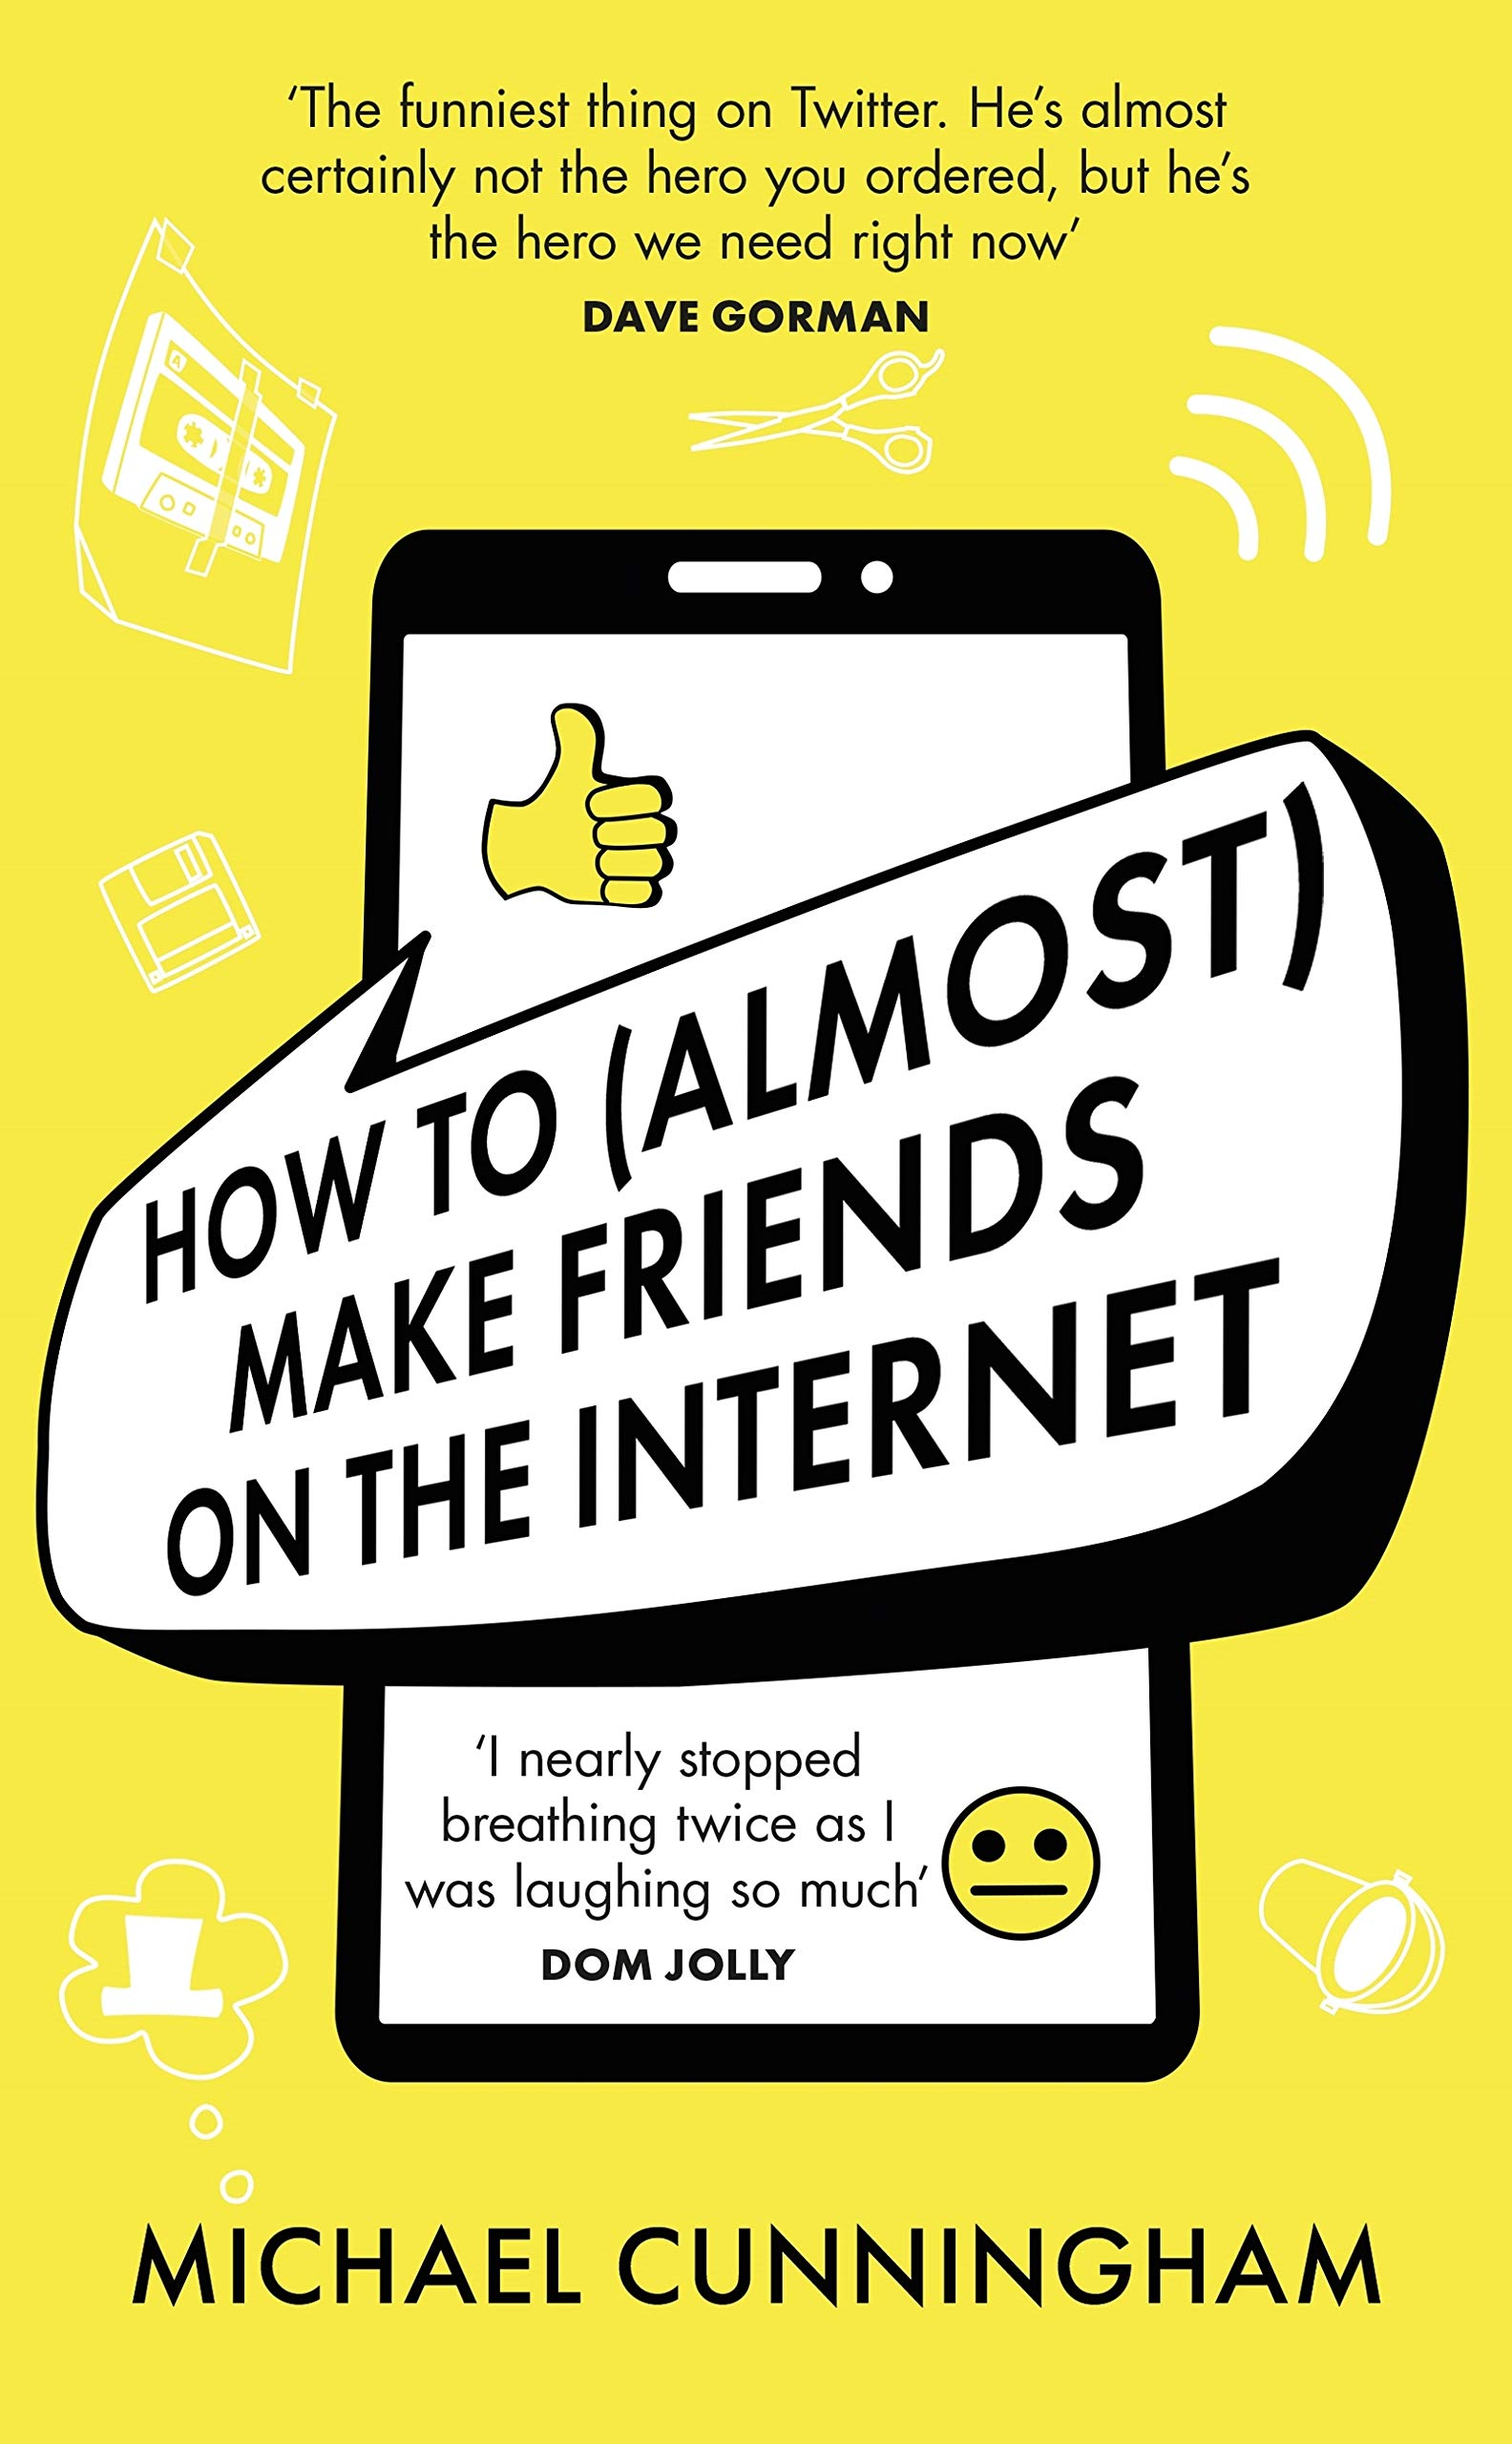 How to (Almost) Make Friends on the Internet: One man who just wants to connect. One very annoyed world.